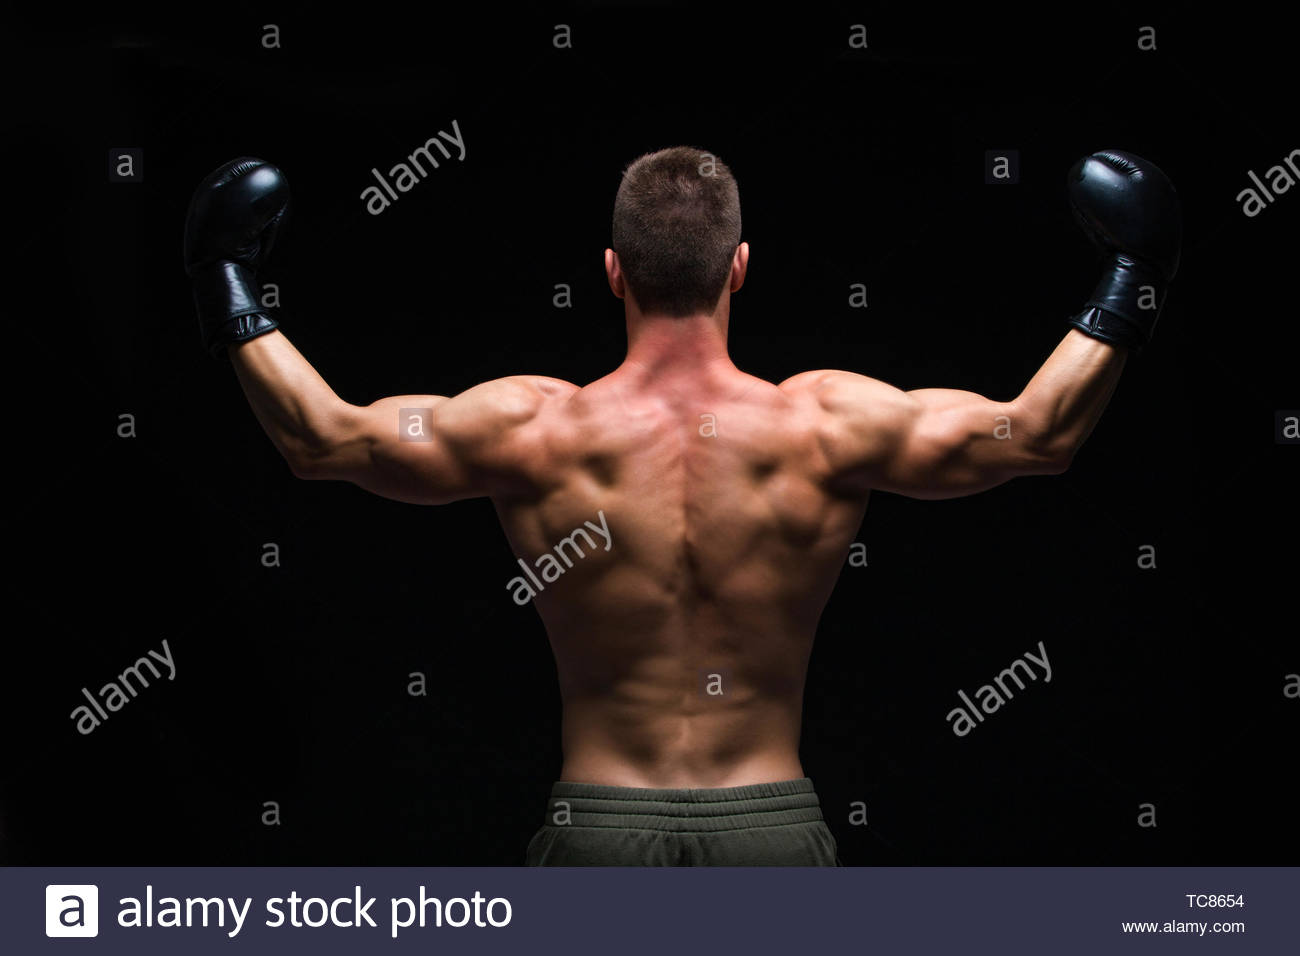 Powerful back. Muscular young man in black boxing gloves and shorts shows the different movements and strikes in the studio on a dark background - Stock Image